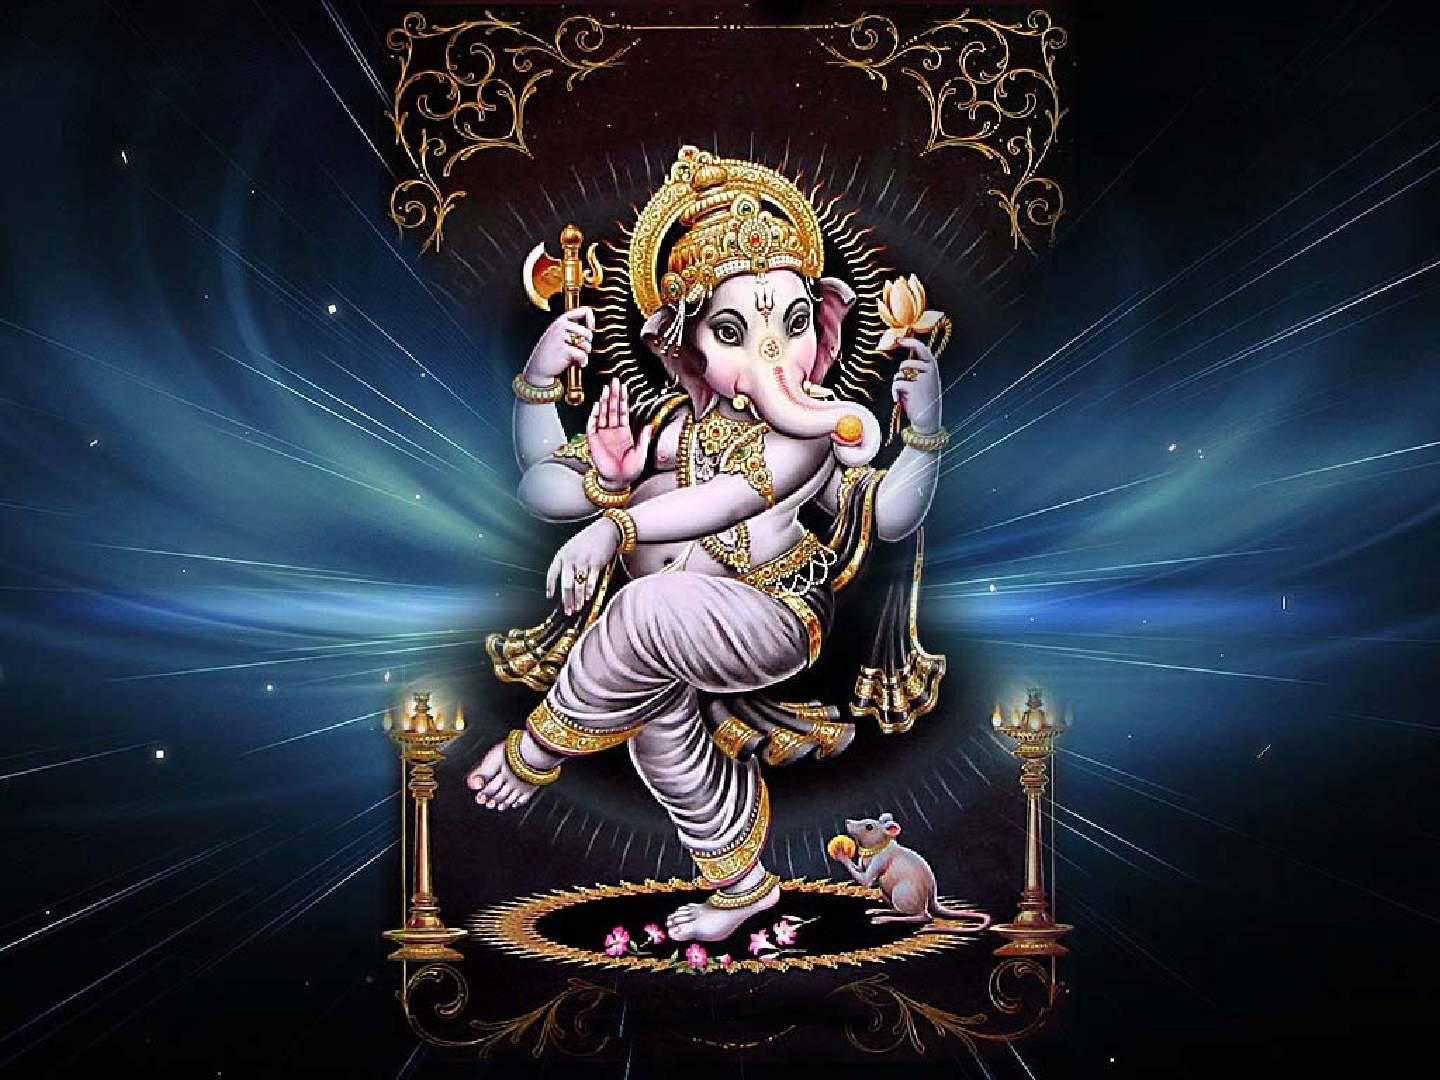 Download 3D Ganesh Wallpapers Free Download Gallery